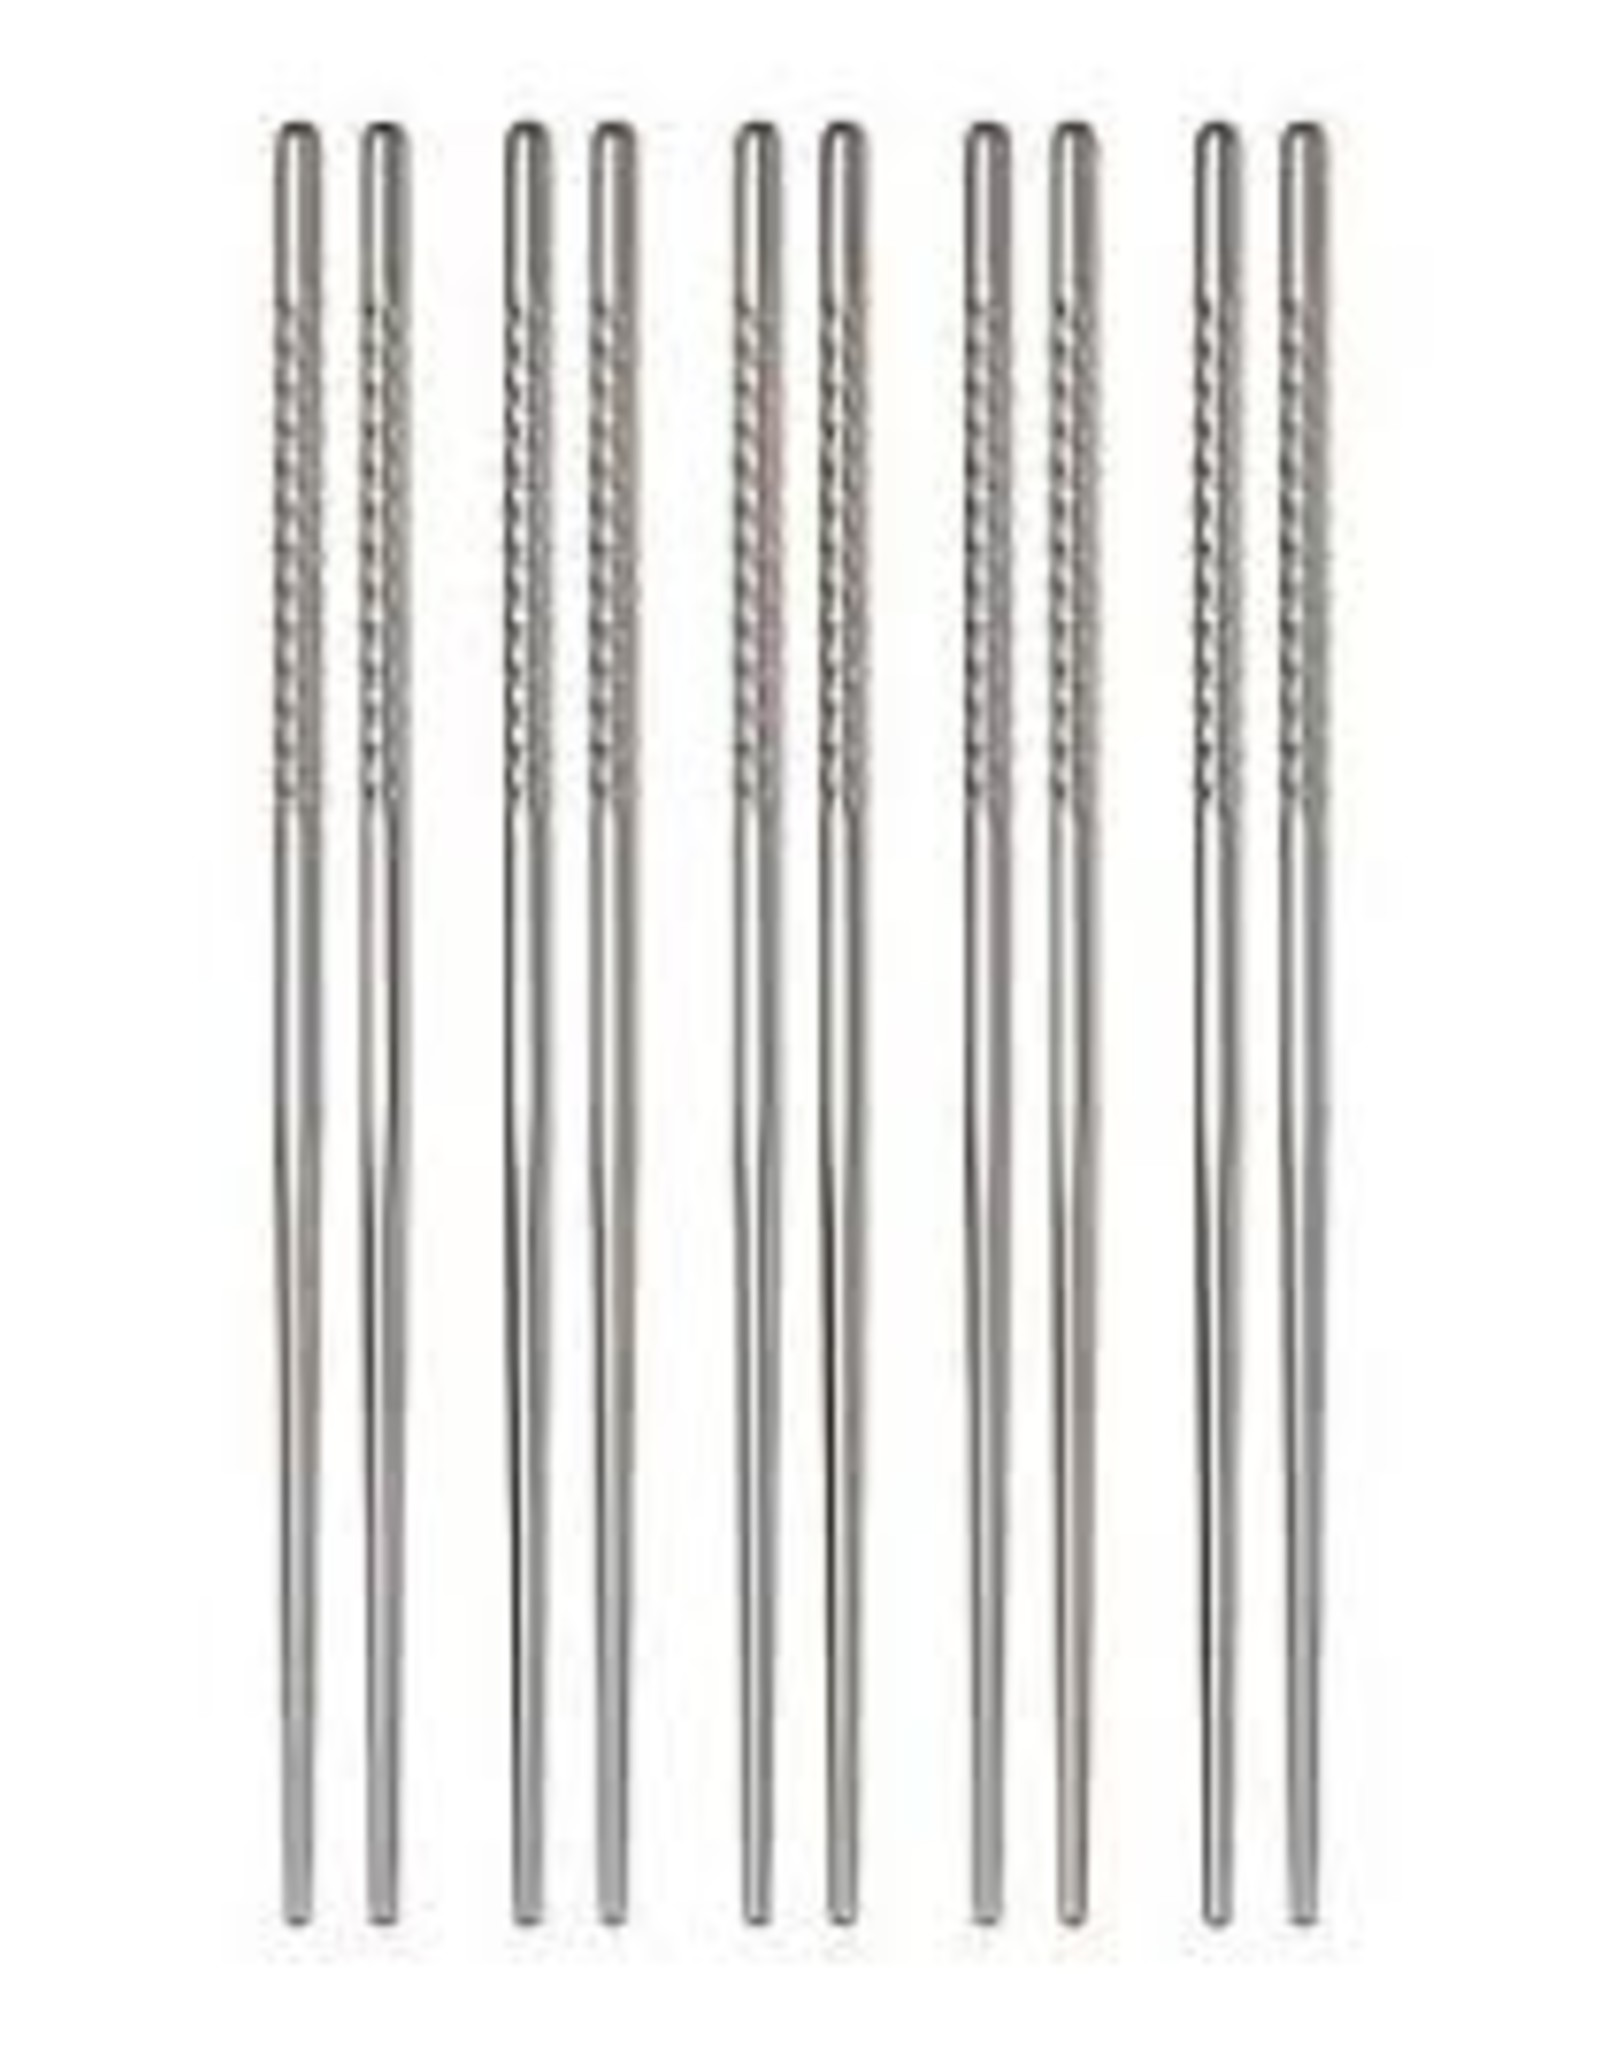 HIC Stainless Steel Chopsticks